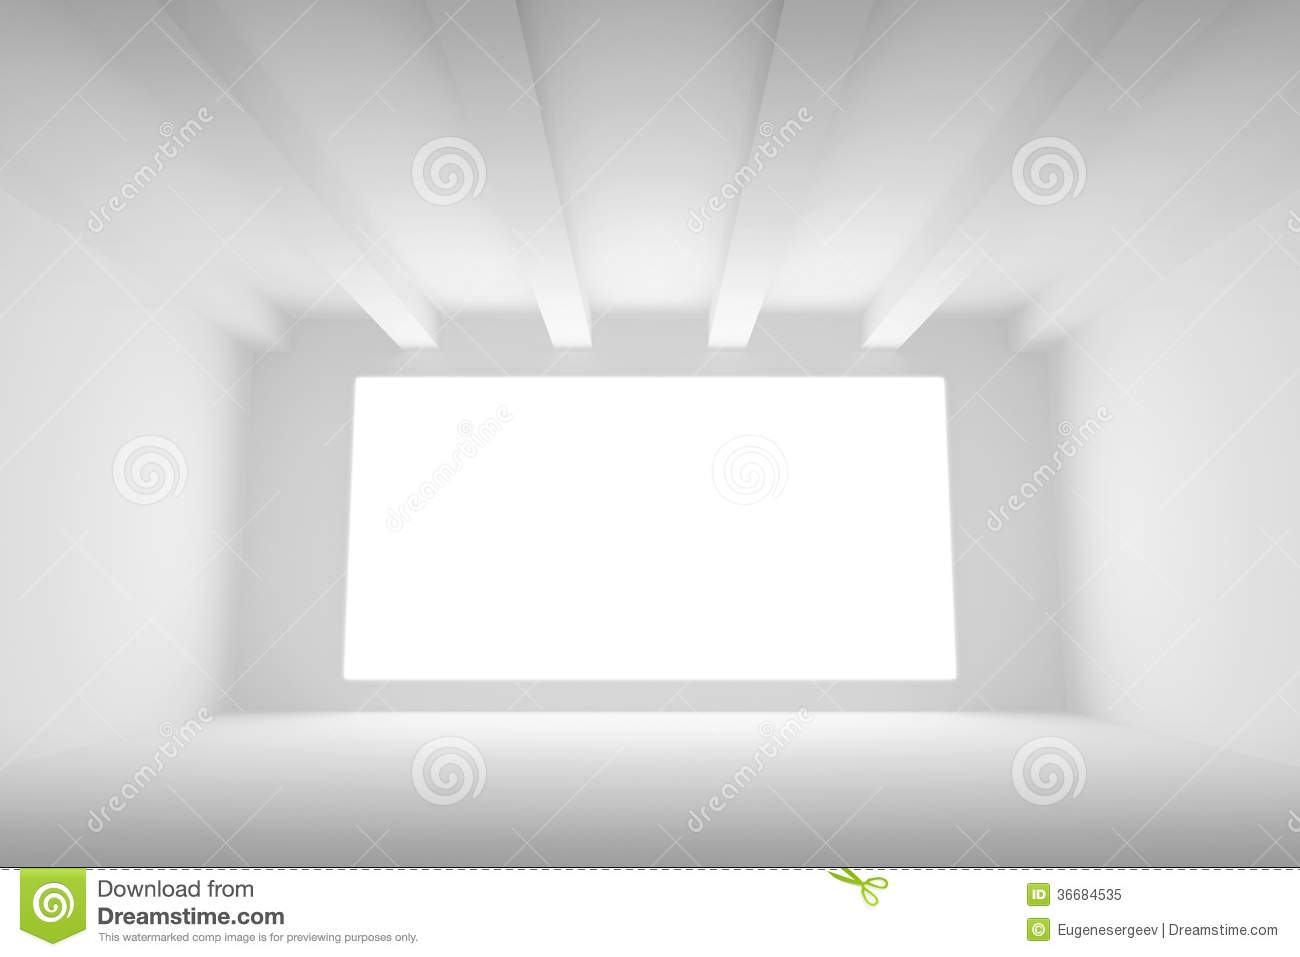 Empty White Room Interior With Light Screen Royalty Free